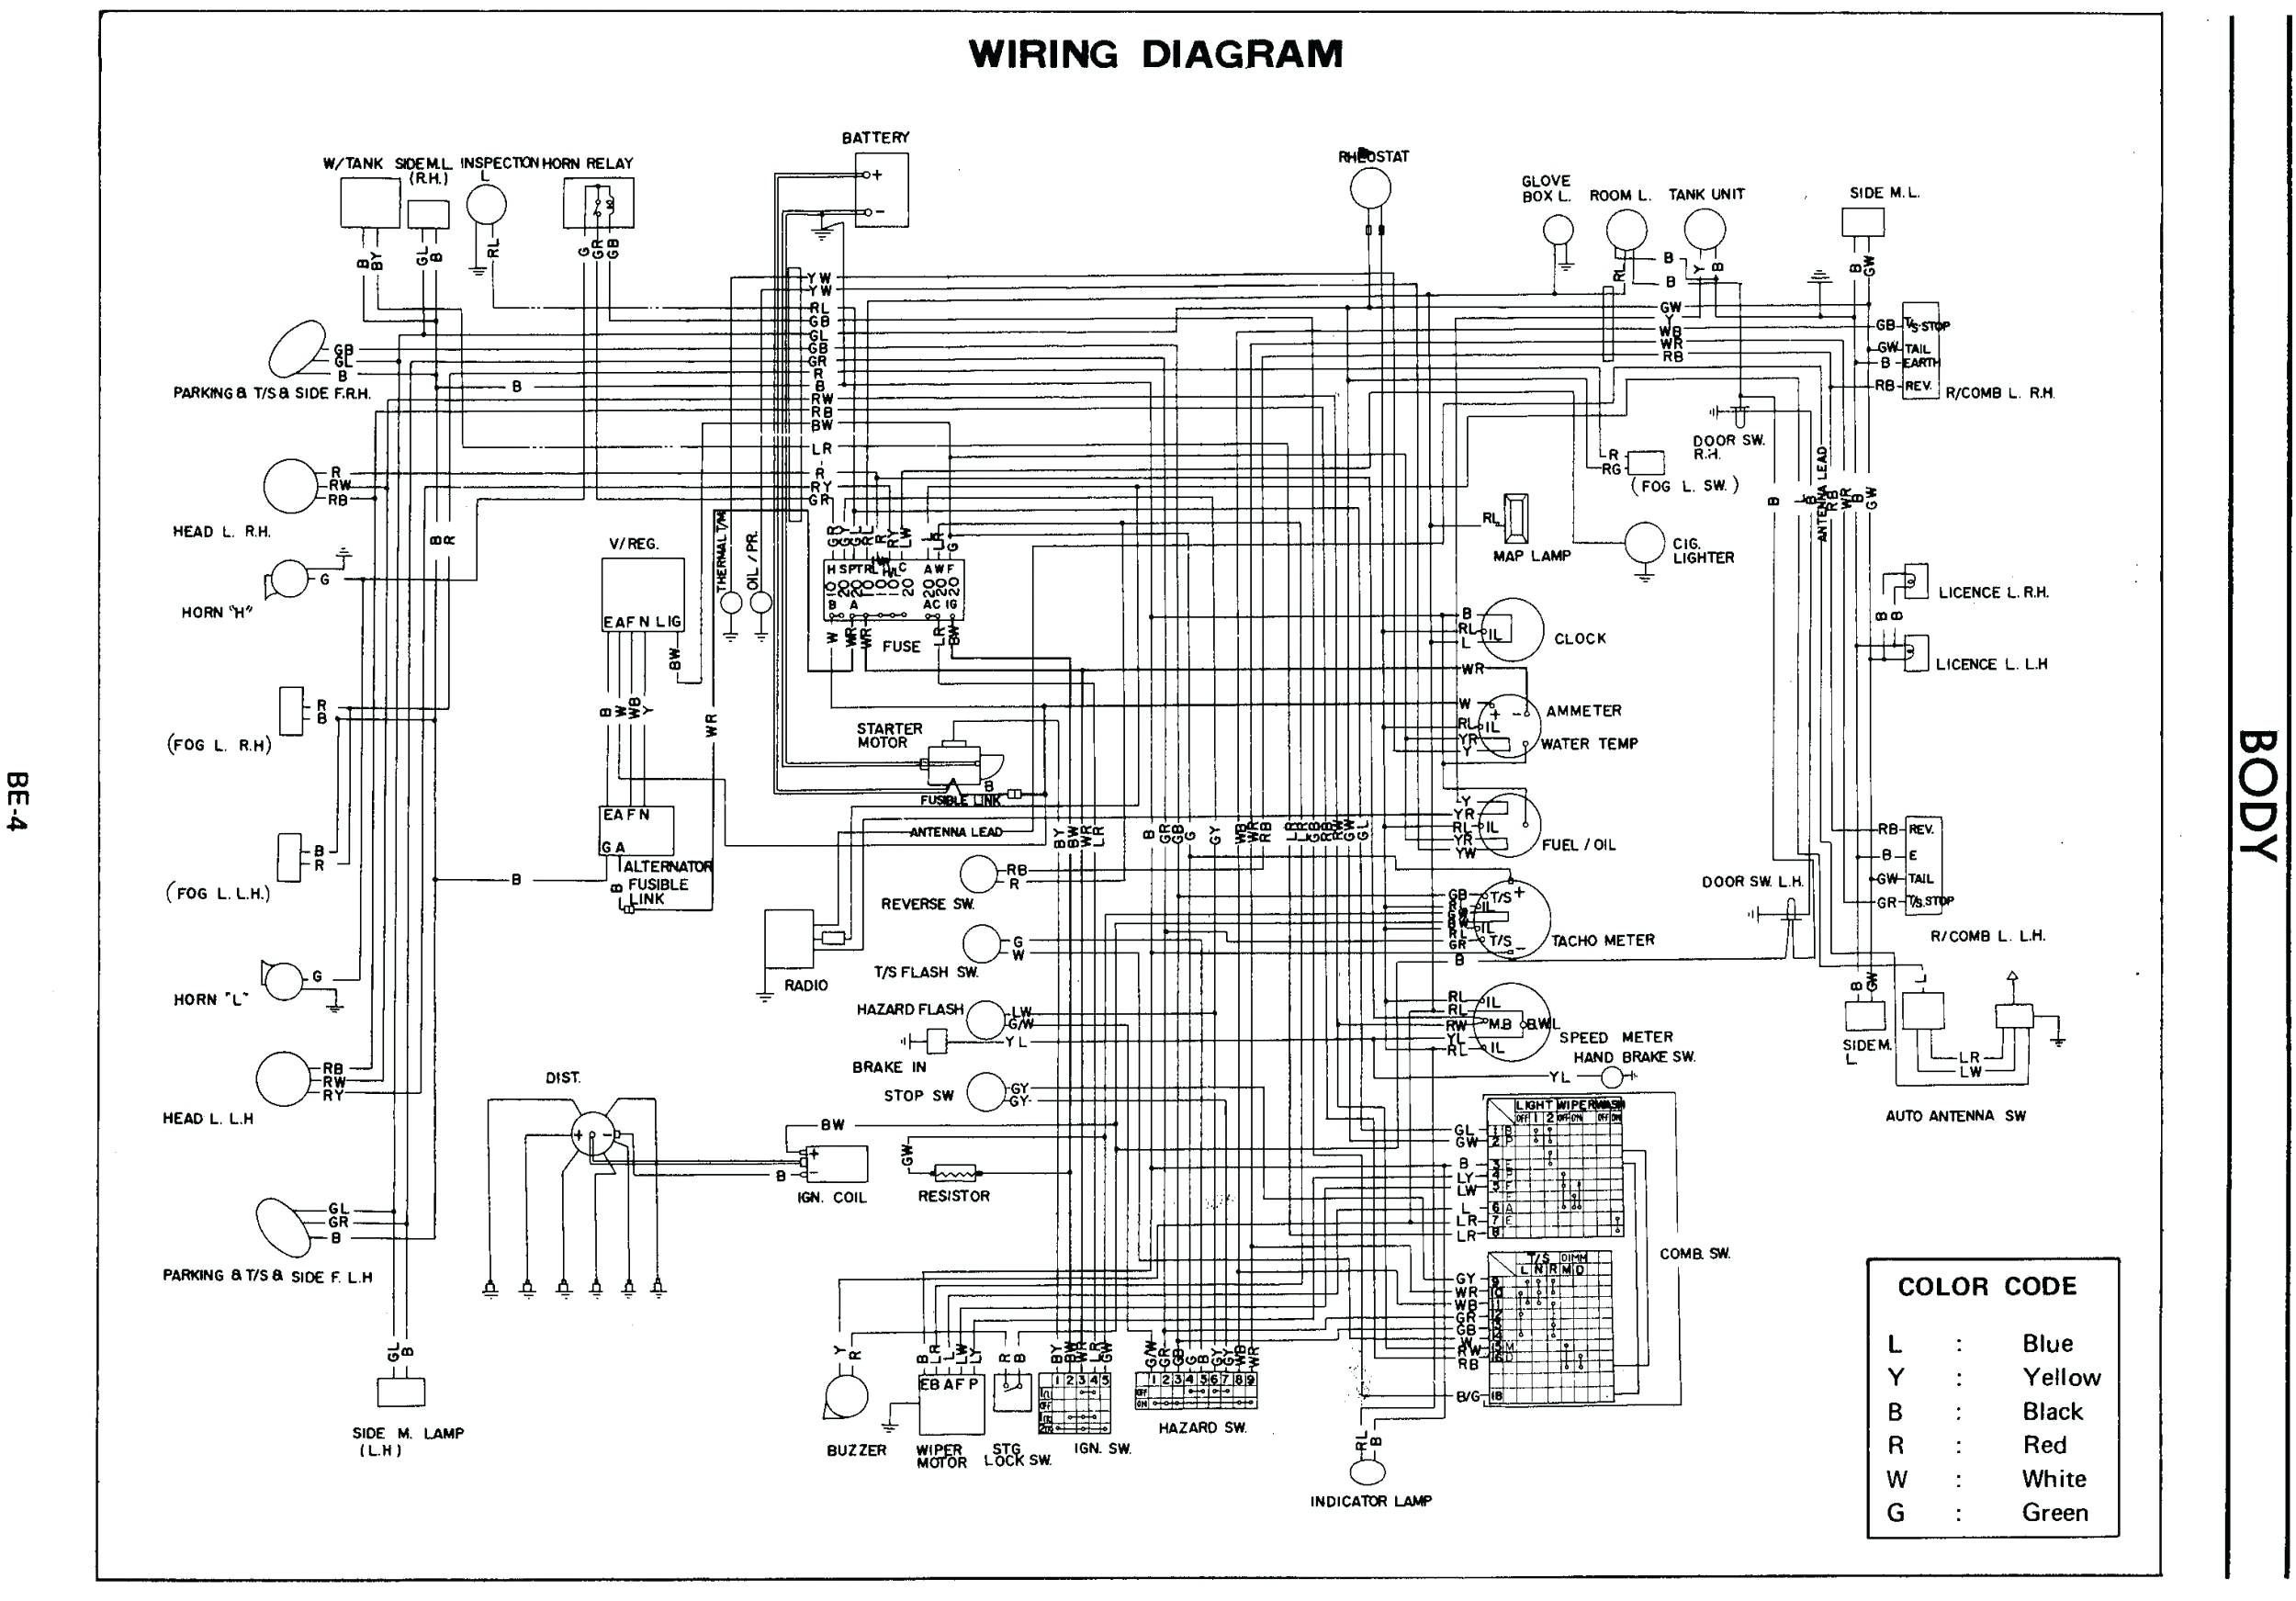 A Wiring Diagram Is A Type Of Schematic That Uses Abstract Pictorial Symbols To Show All The Inter Electrical Wiring Diagram Diagram Electrical Circuit Diagram